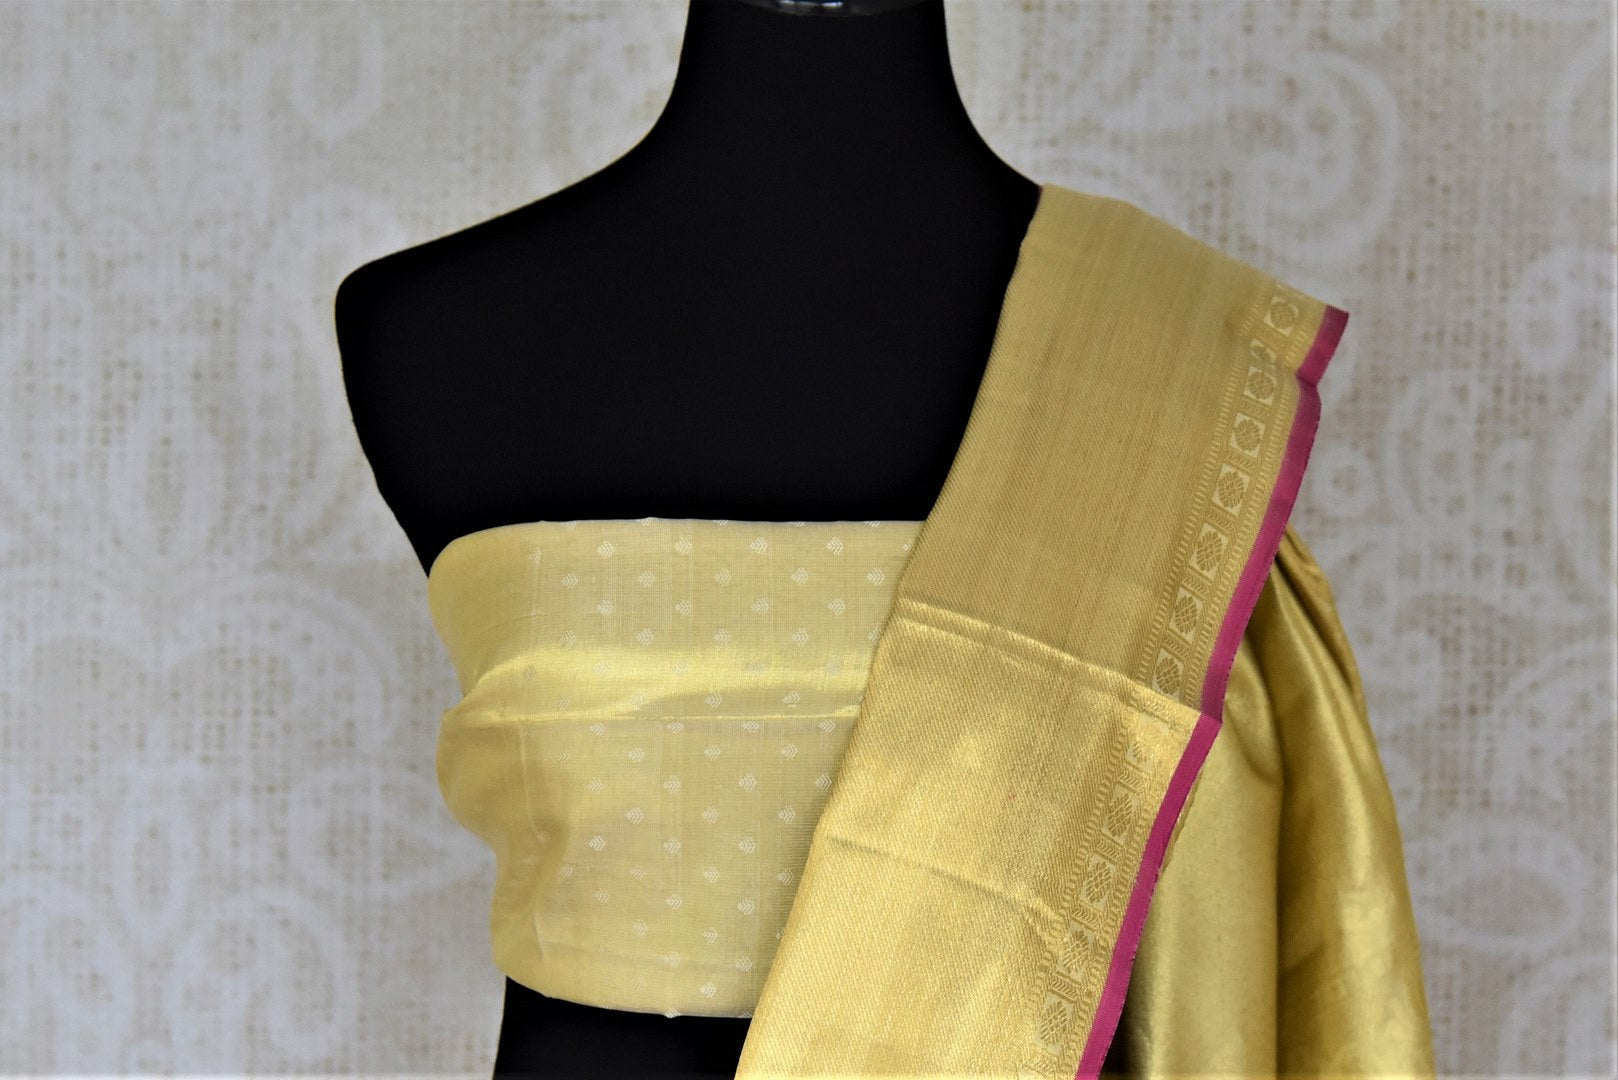 Buy gorgeous golden zari work Kanjivaram saree online in USA with zari border. Look rich and traditional at weddings and festive occasions with exquisite Kanchipuram silk sarees from Pure Elegance Indian fashion store in USA.-blouse pallu